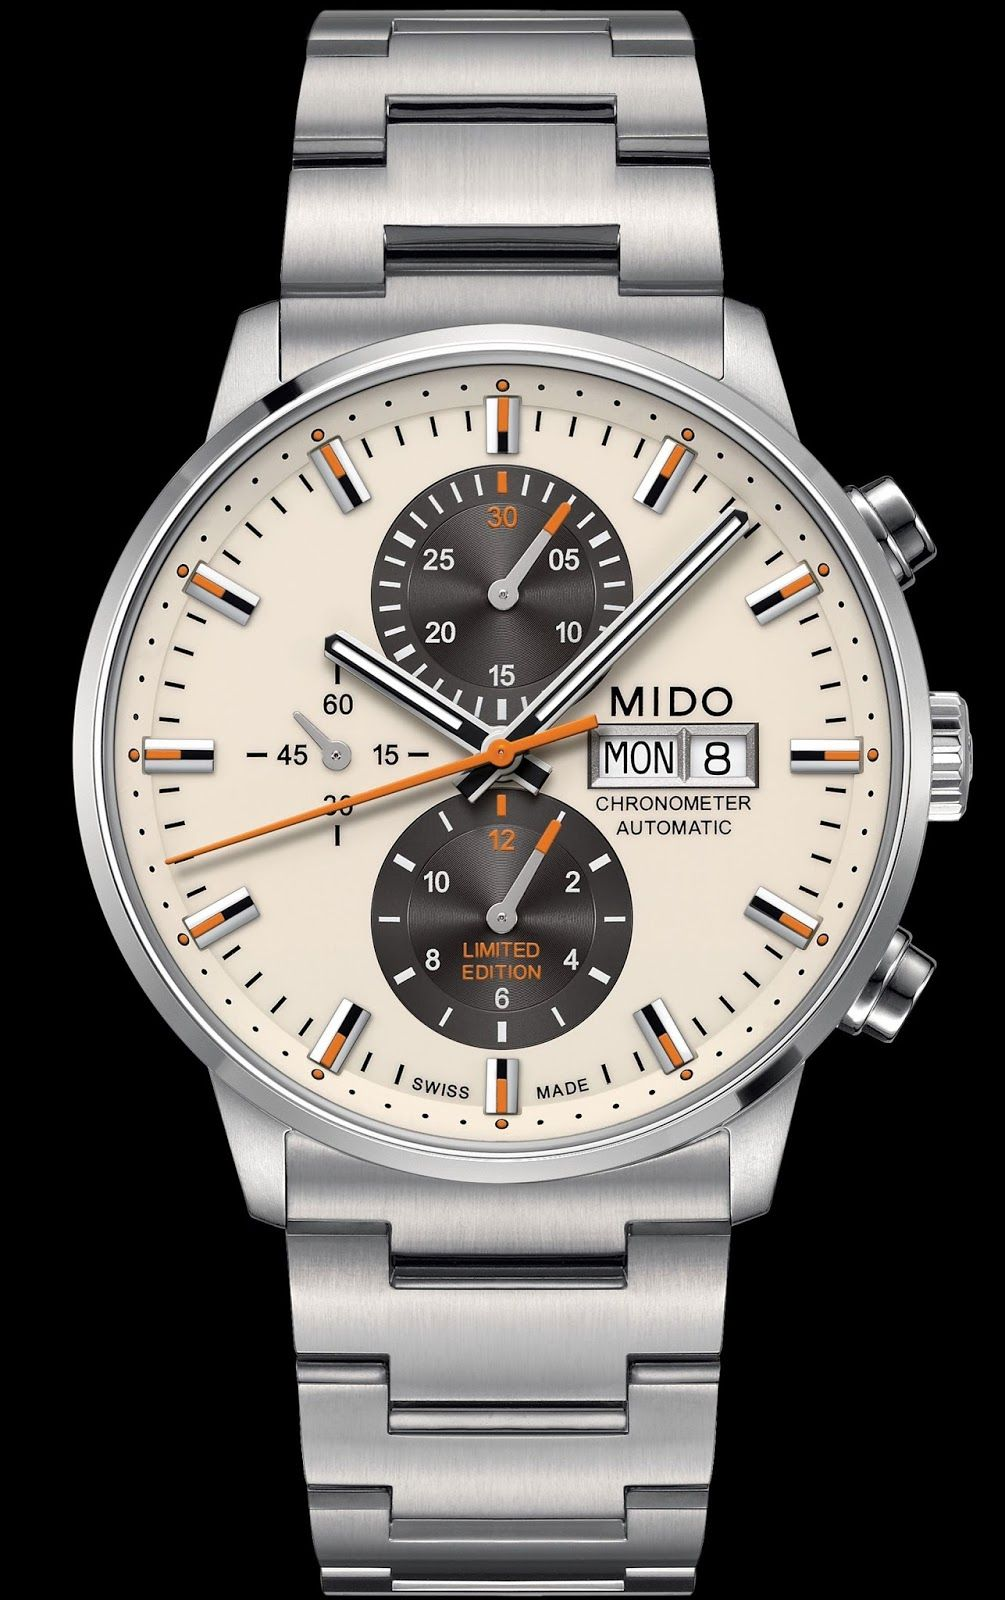 1b3694d34a9 Mido Commander Chronometer Limited Edition Relogio Mido